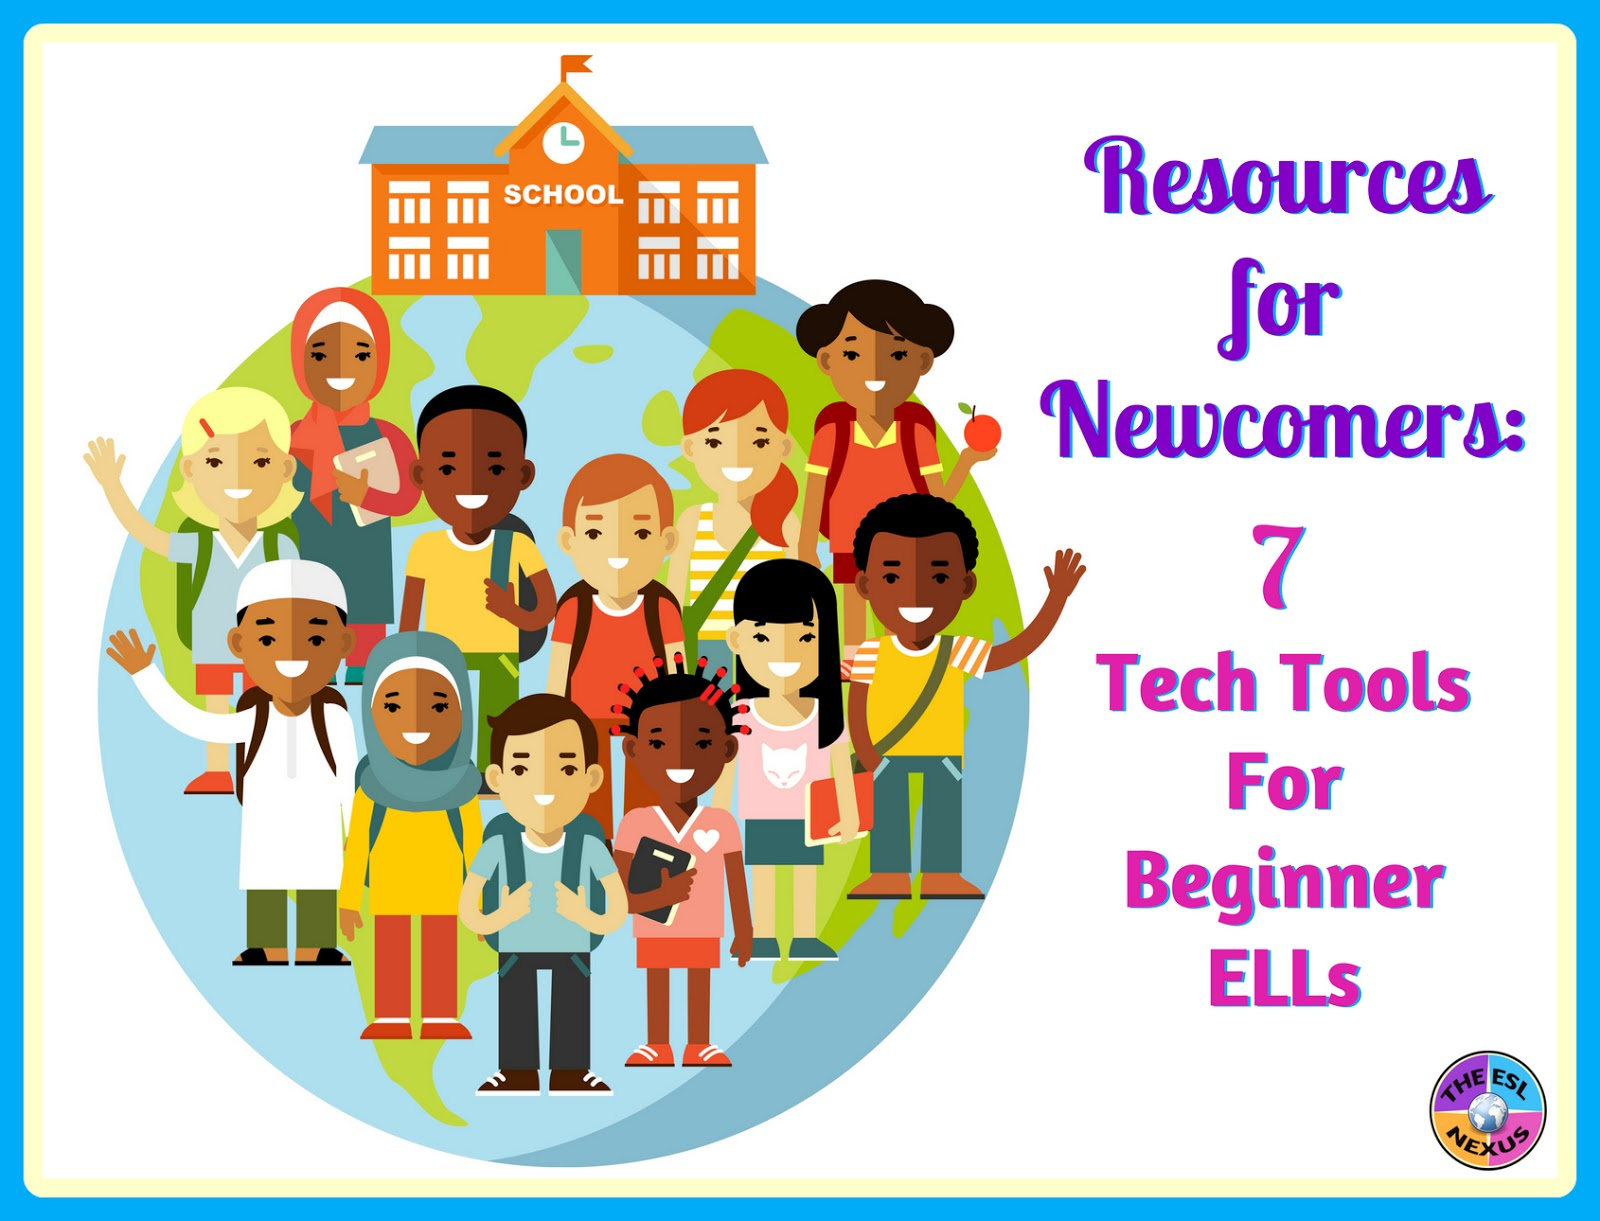 These 7 technology tools are great for helping newcomer ELLs learn English.